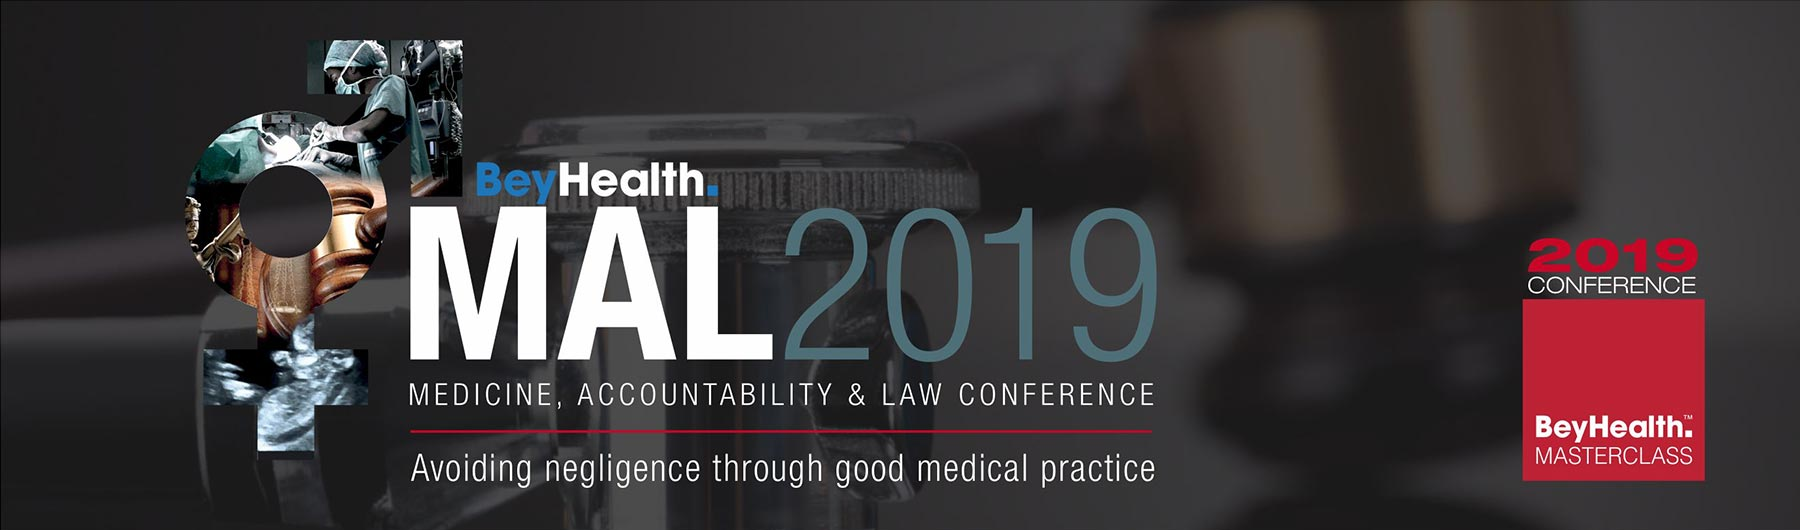 MAL 2019 - Medicine, Accountability  & Law